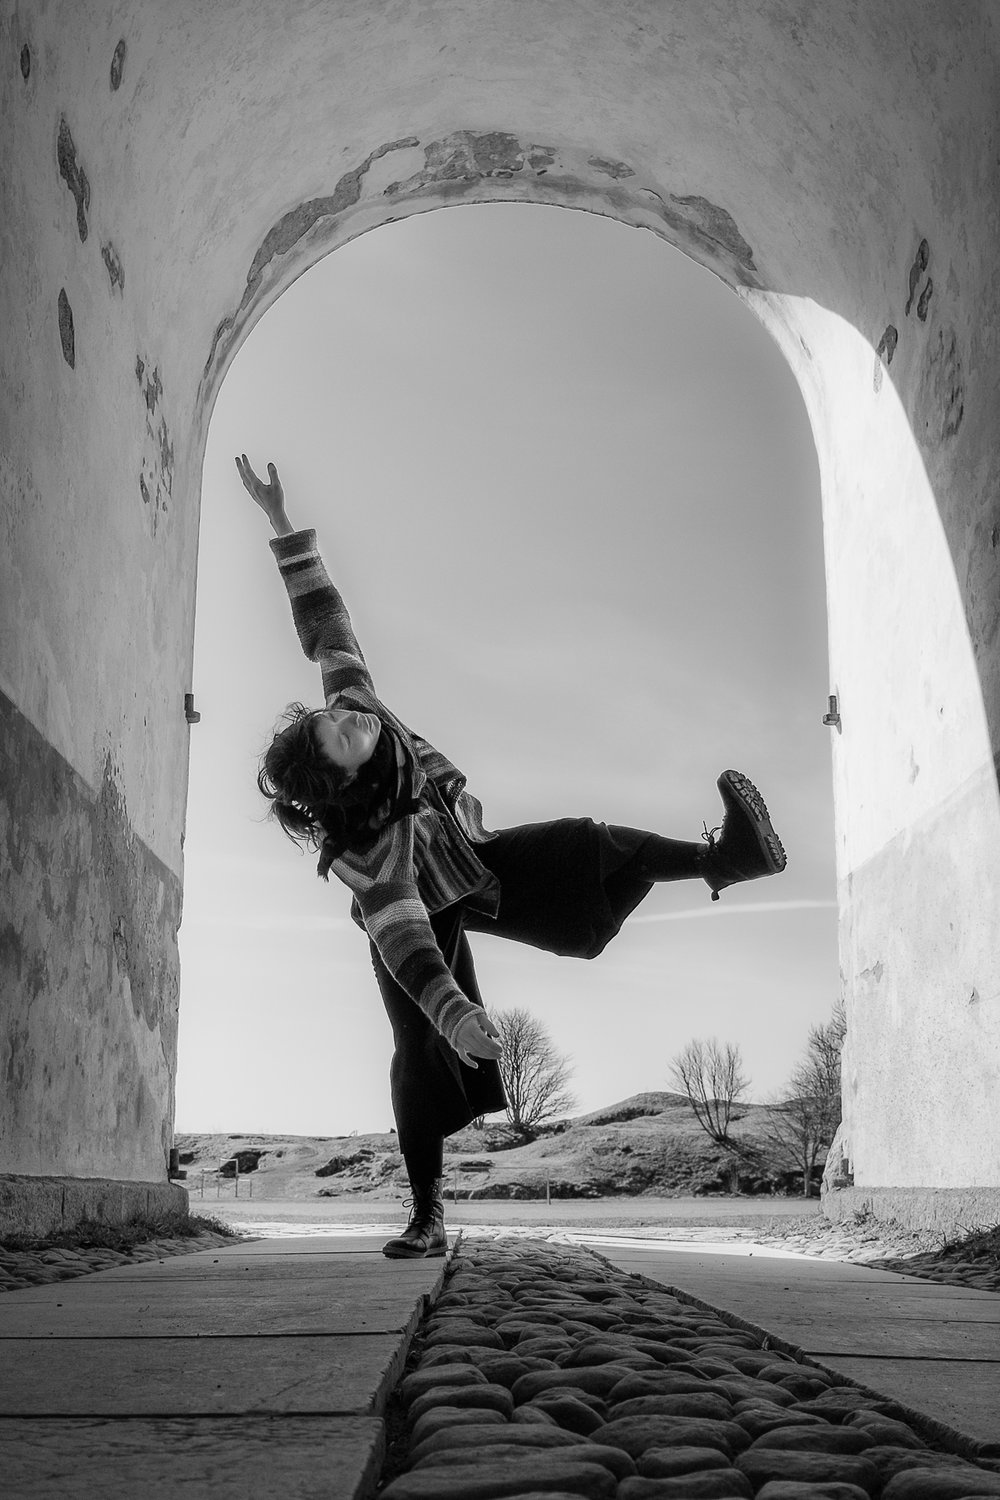 TAKE OFF  🌐 UNESCO World Heritage site | Suomenlinna fortress, Helsinki, Finland | dancer:  Kristiina Turtiainen  Part of my photography series of collaborative improvised modern dance using streets and other public spaces as stages.